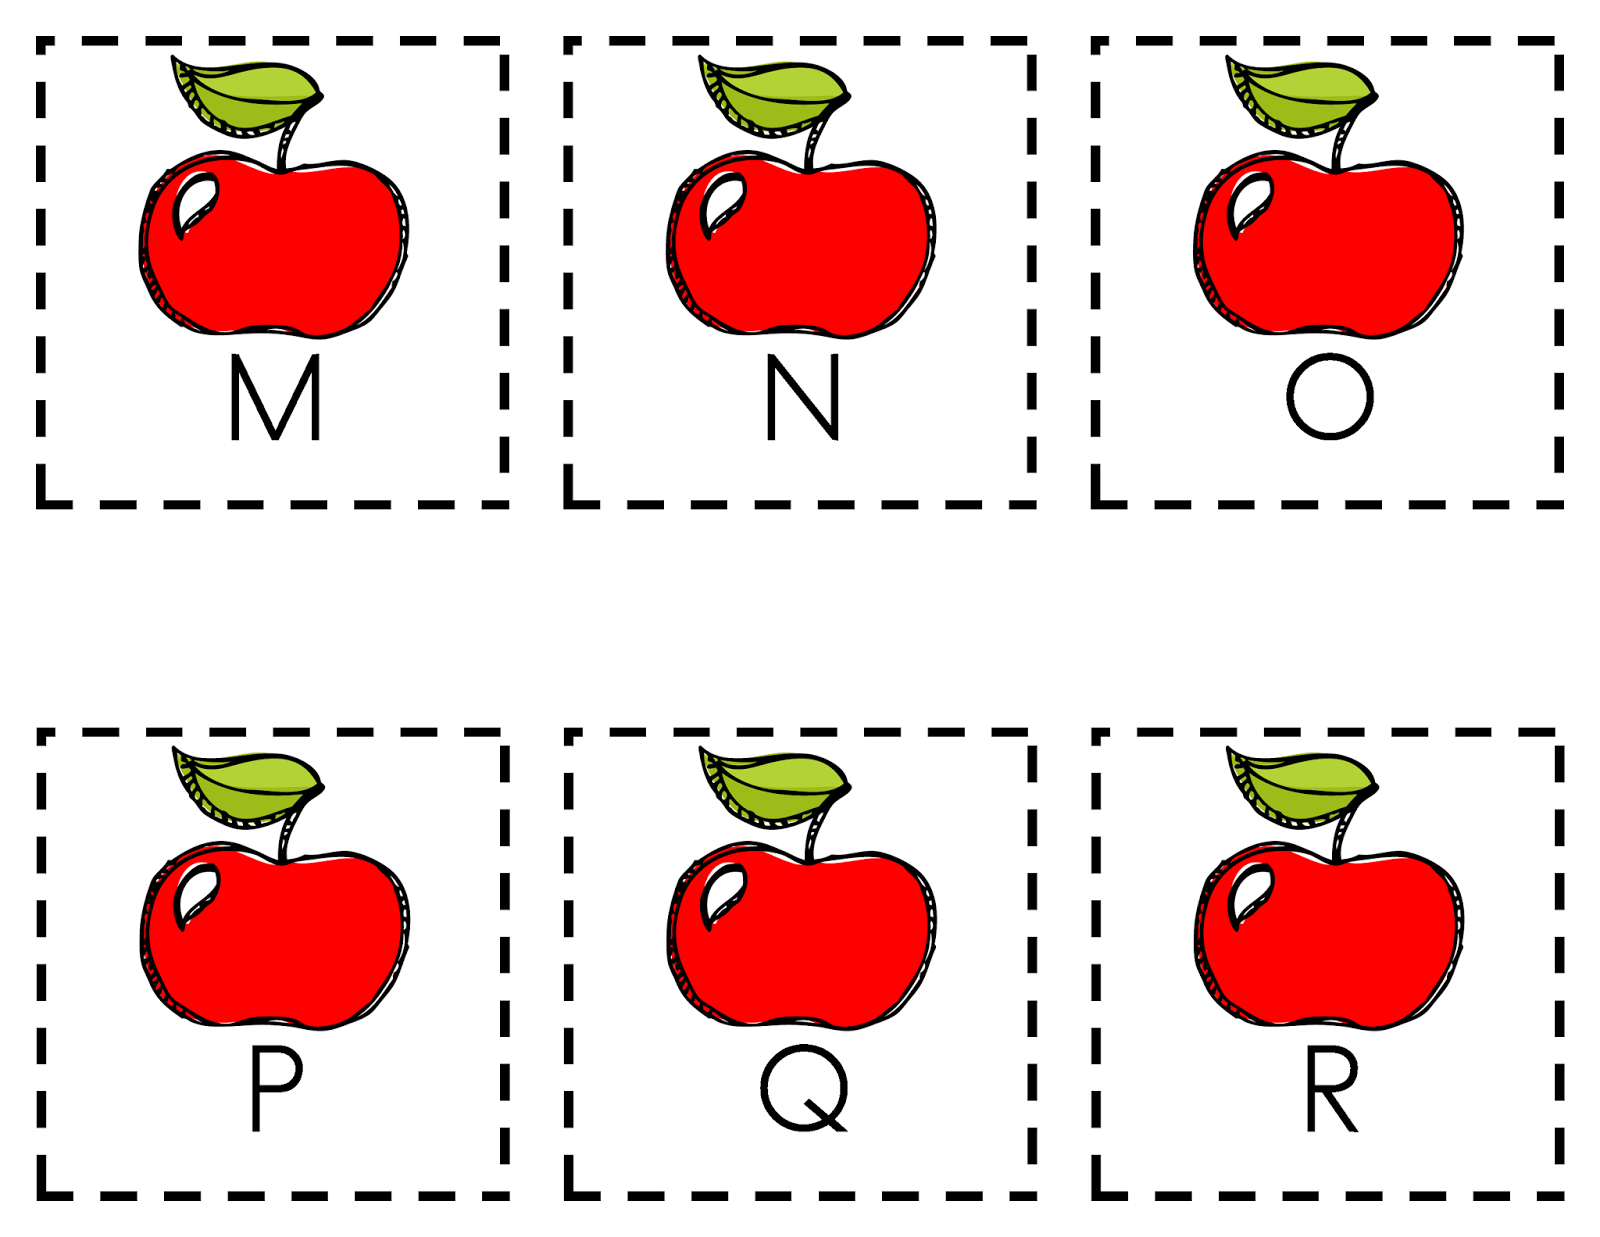 Teaching Is Sweet Johnny Appleseed Letter Name Sound Recognition Game